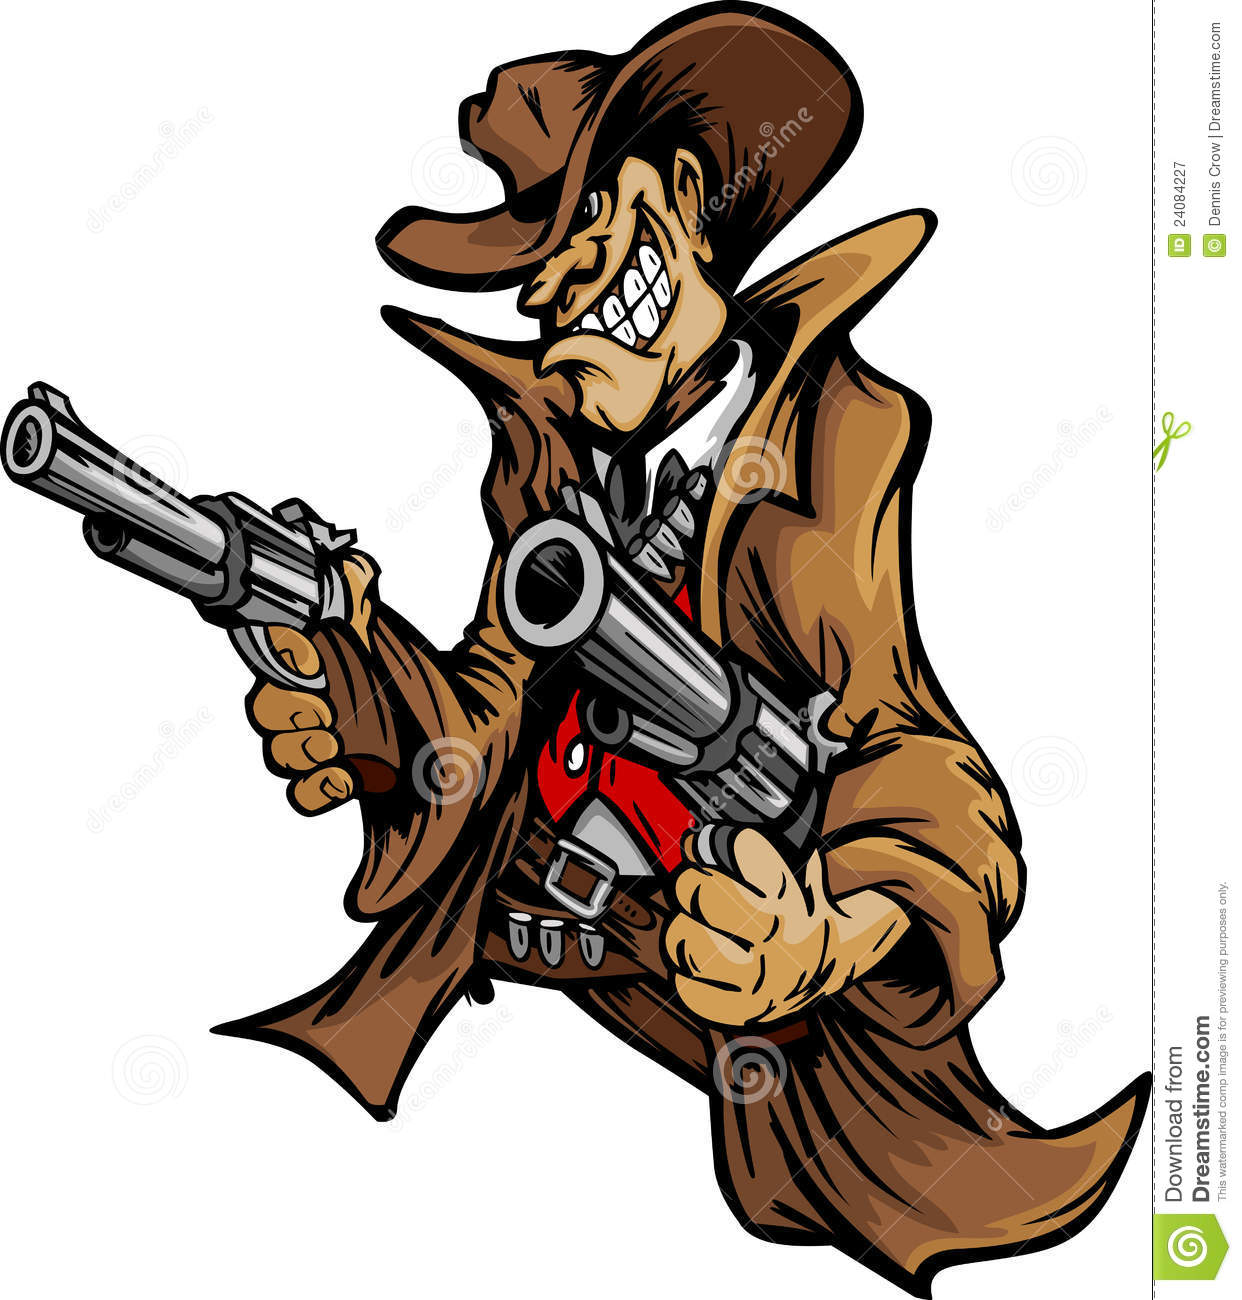 Wild west furthermore Funny Optical Illusion moreover Marshals besides Bespectacled Old Man Avatar 2 1166294 further They care about the baby before its born but not. on old cowboy caricatures